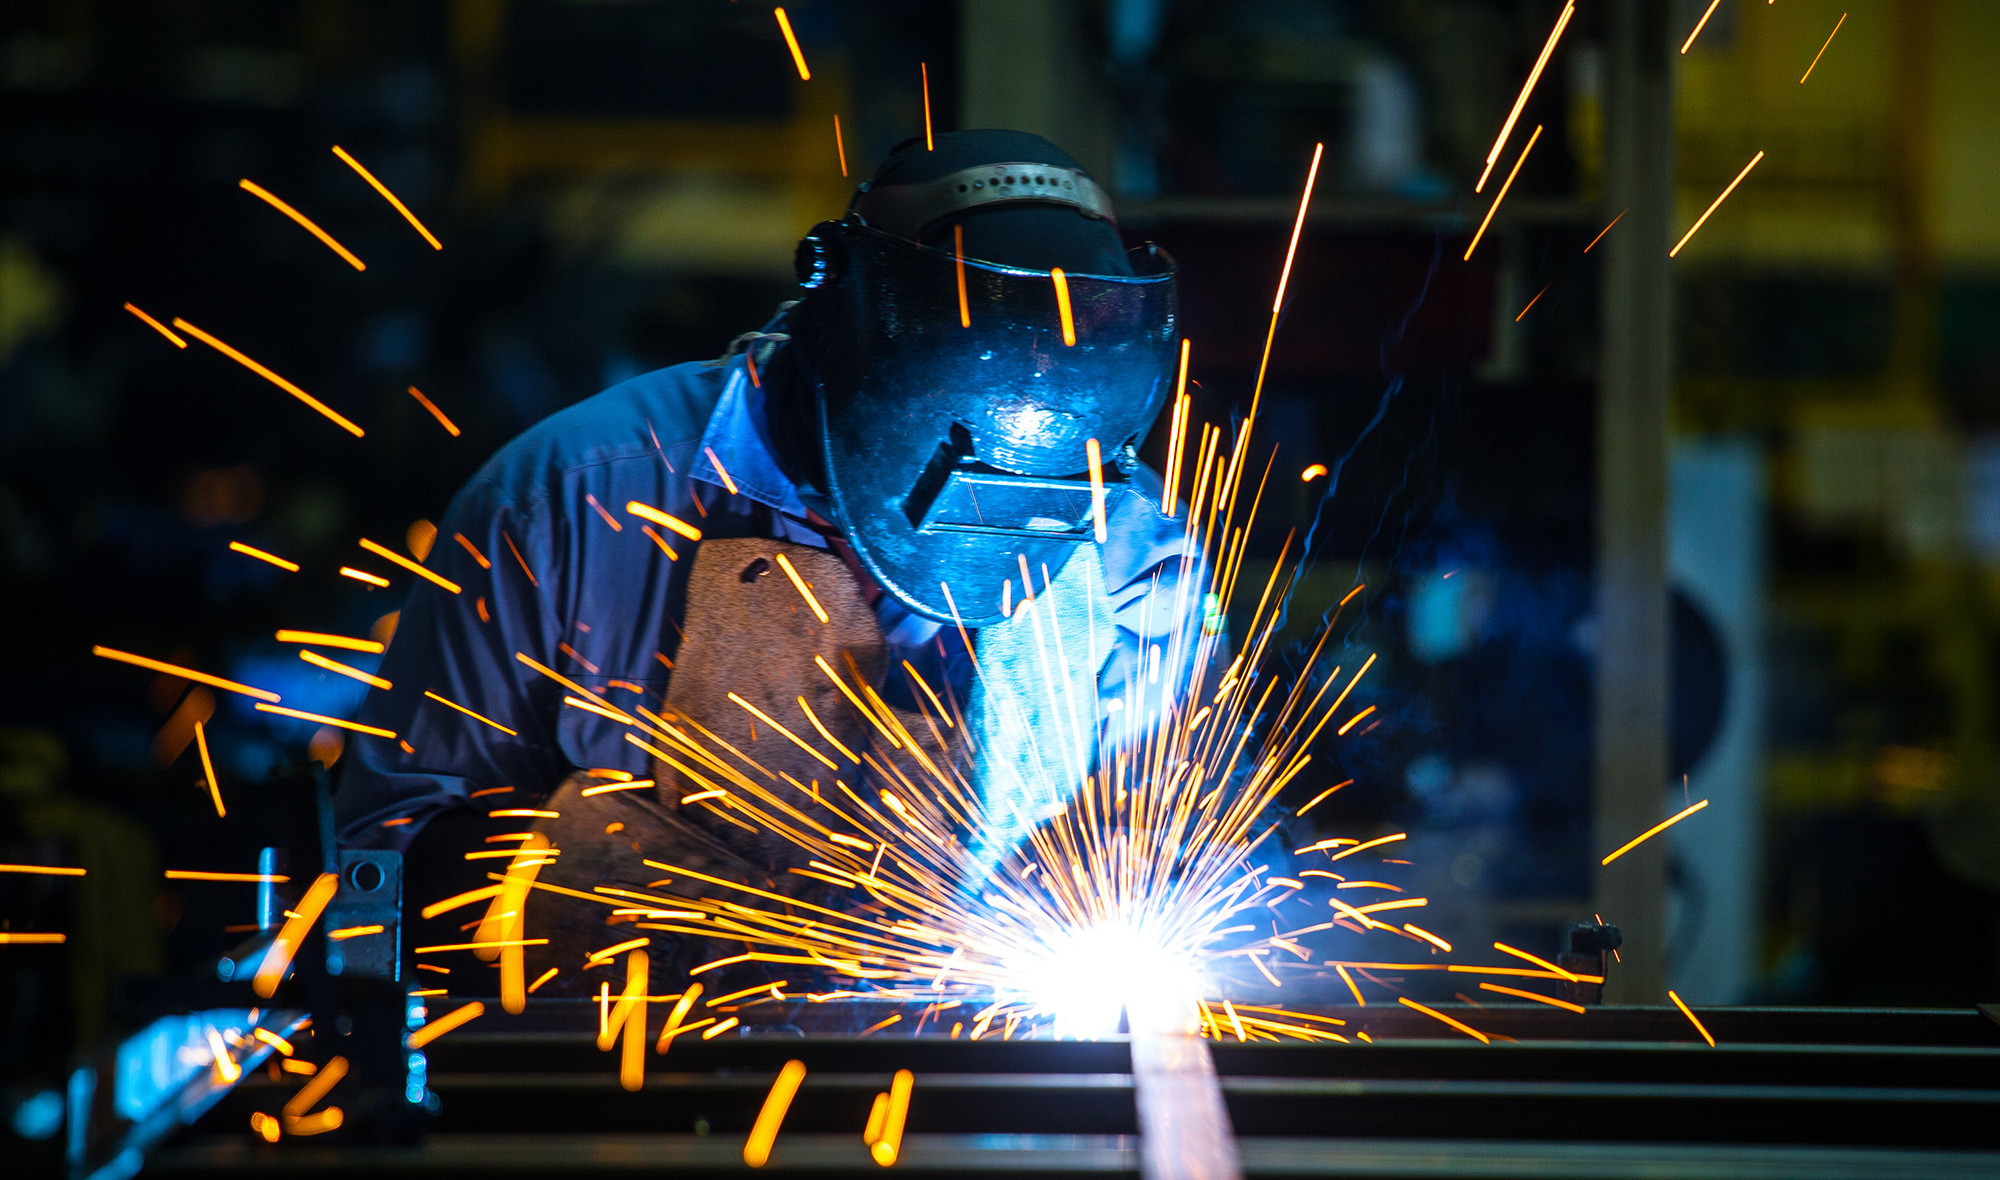 Machine welding for your convenience in La Crosse, WI